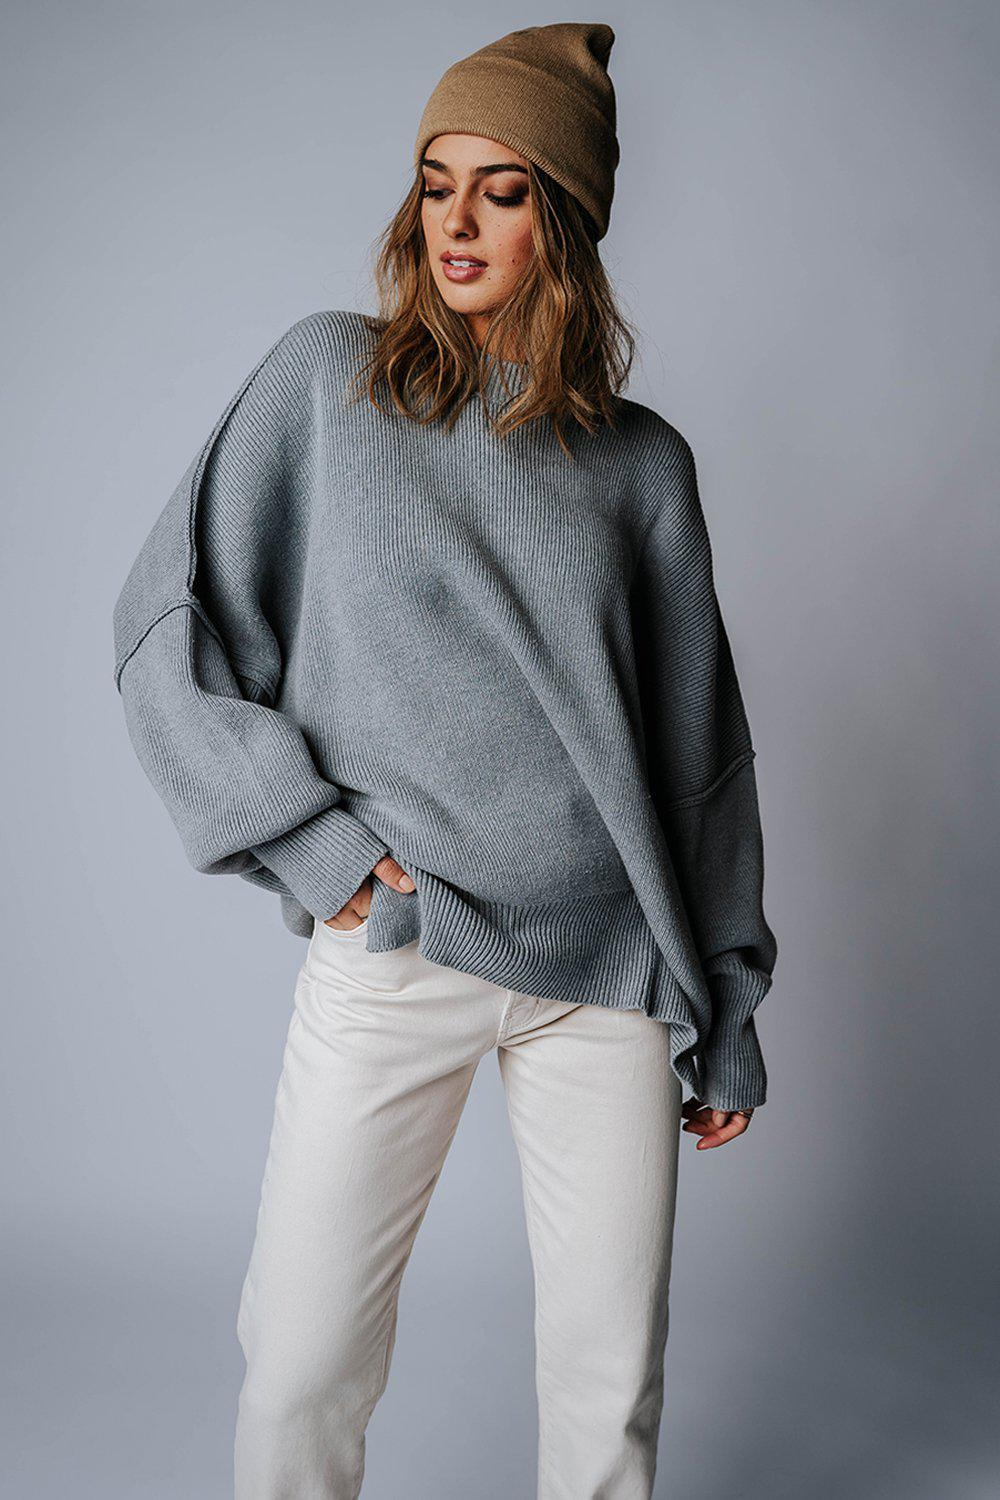 best_seller, State of Emotion Pullover in Grey, Top, women's clothing, dresses, skirts, coats, jackets, shoes, boots, tops, tee shirts, jeans, free people, levi's, rollas, jumpsuits, bottoms, tops, sweaters, pullovers, pants, shorts, sweats,.